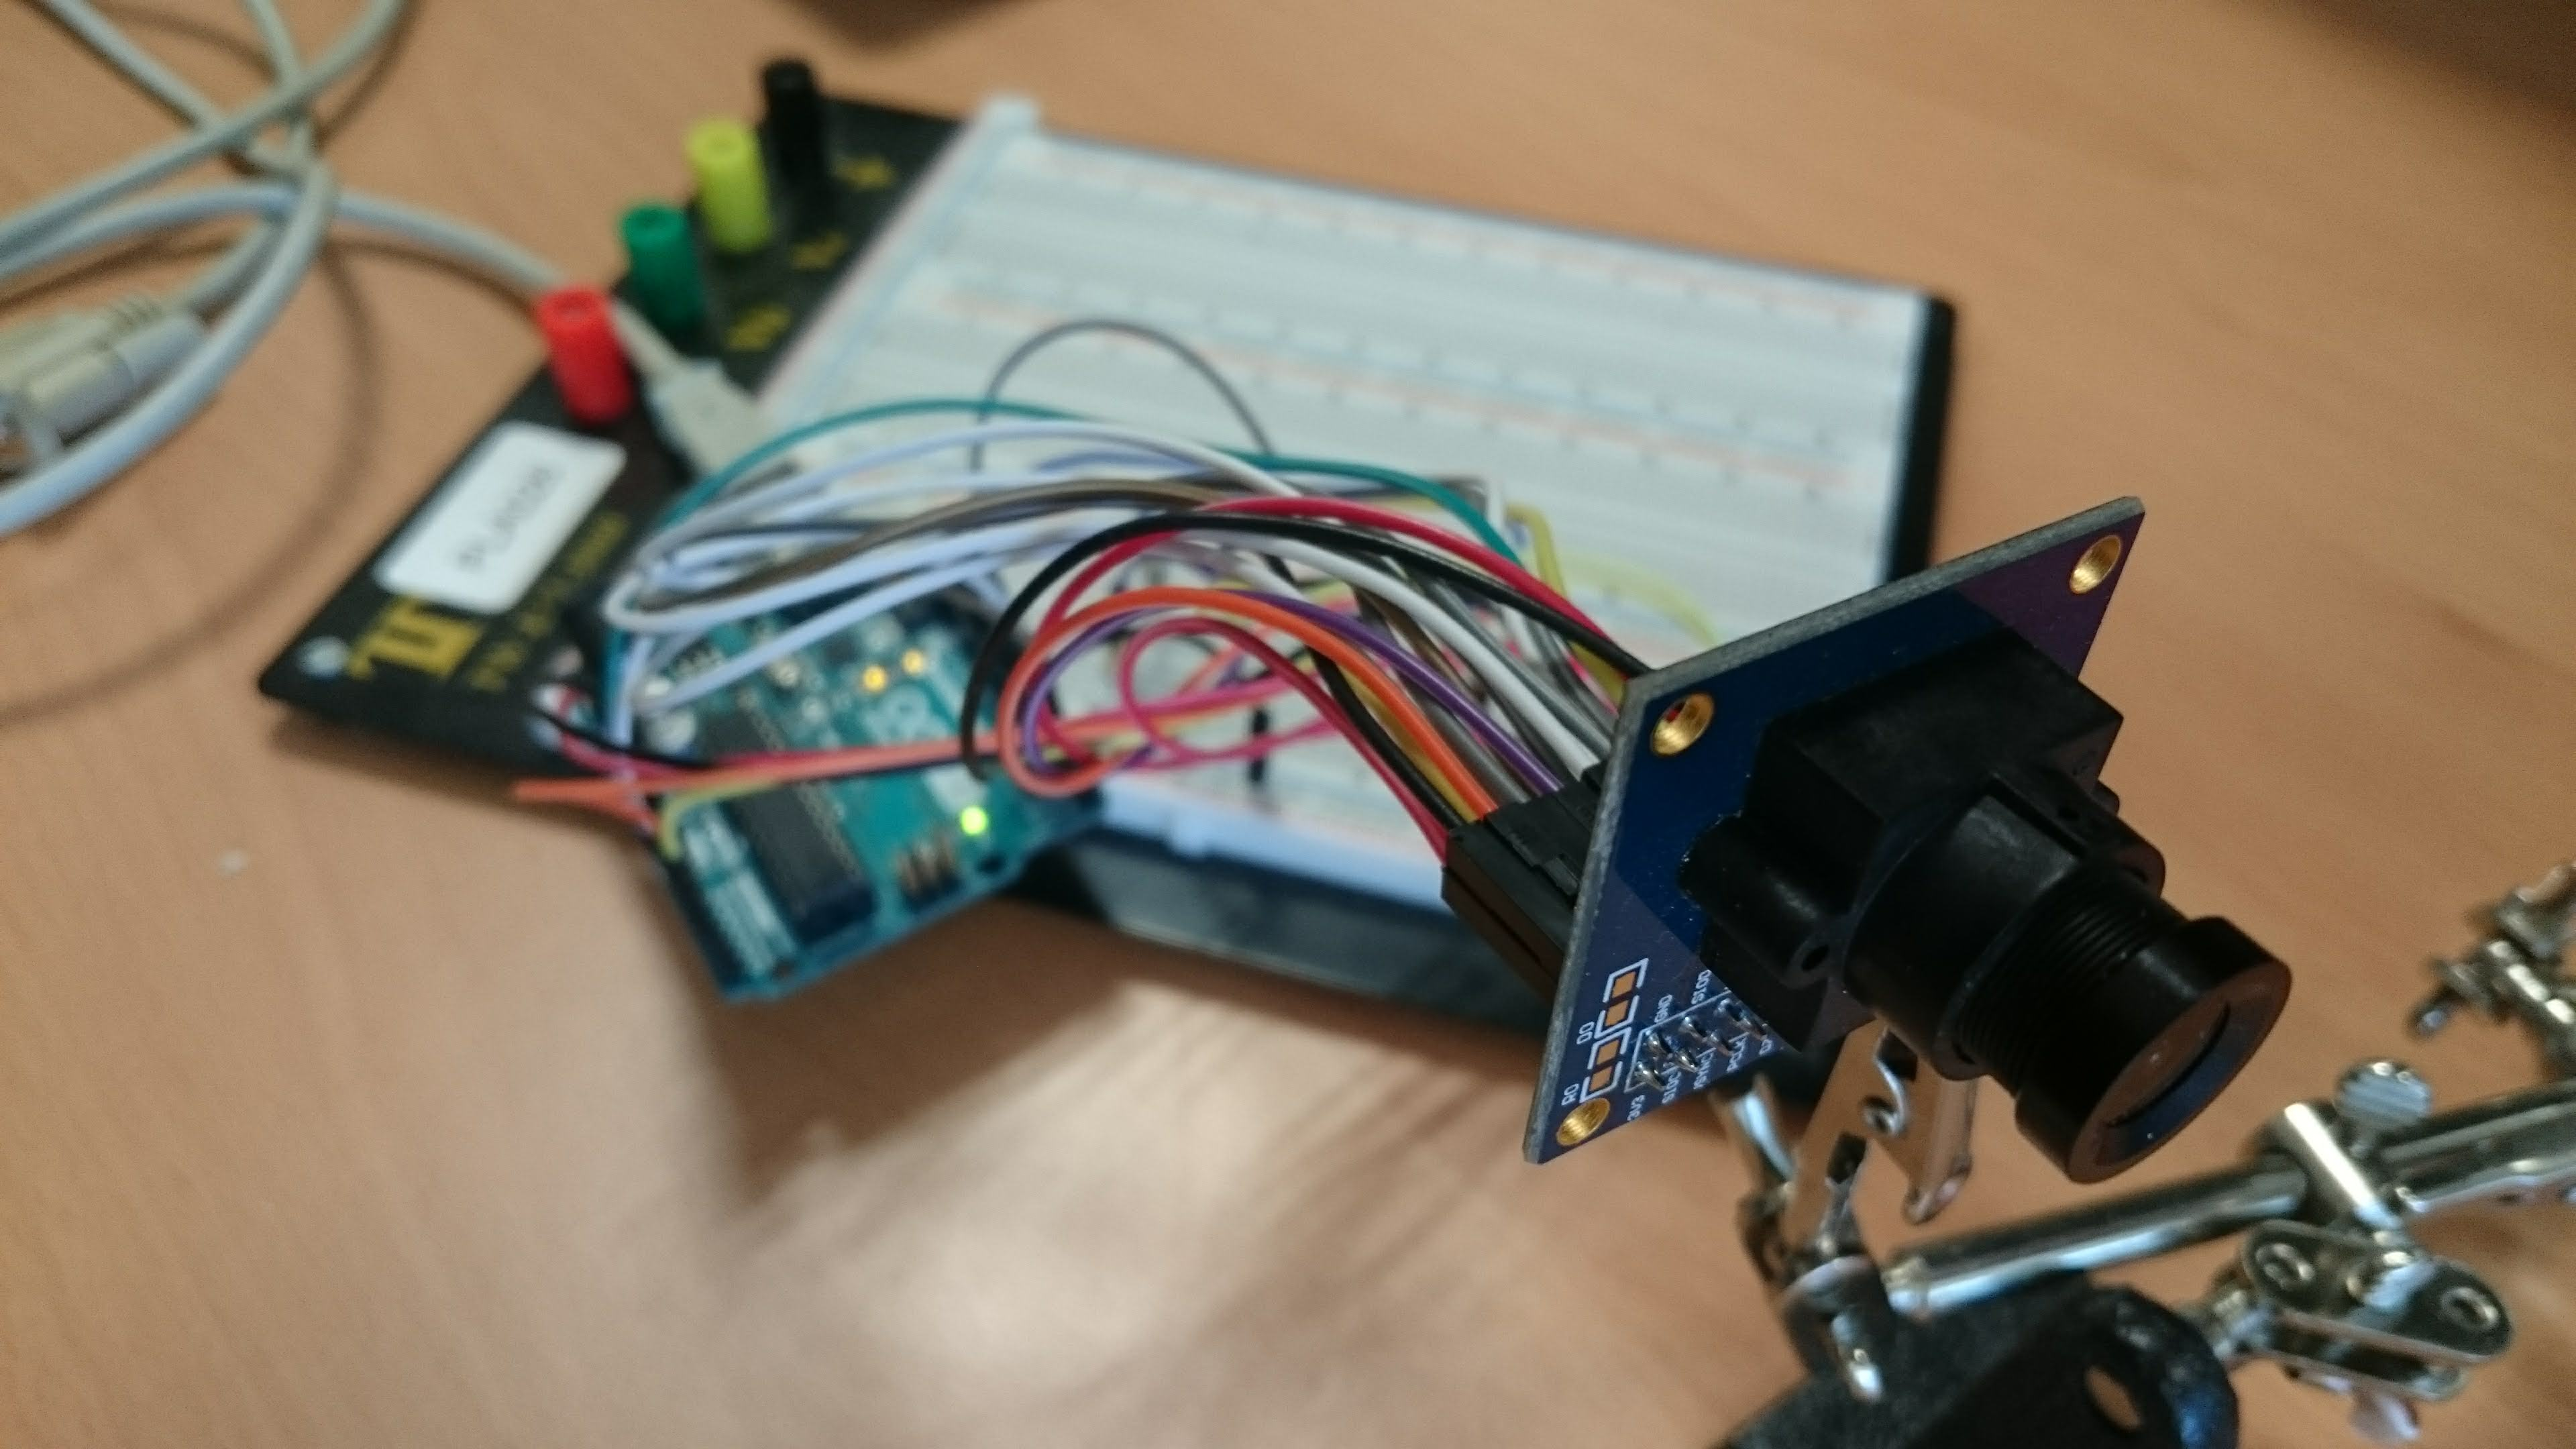 OV7670 camera and arduino · Lulu's blog